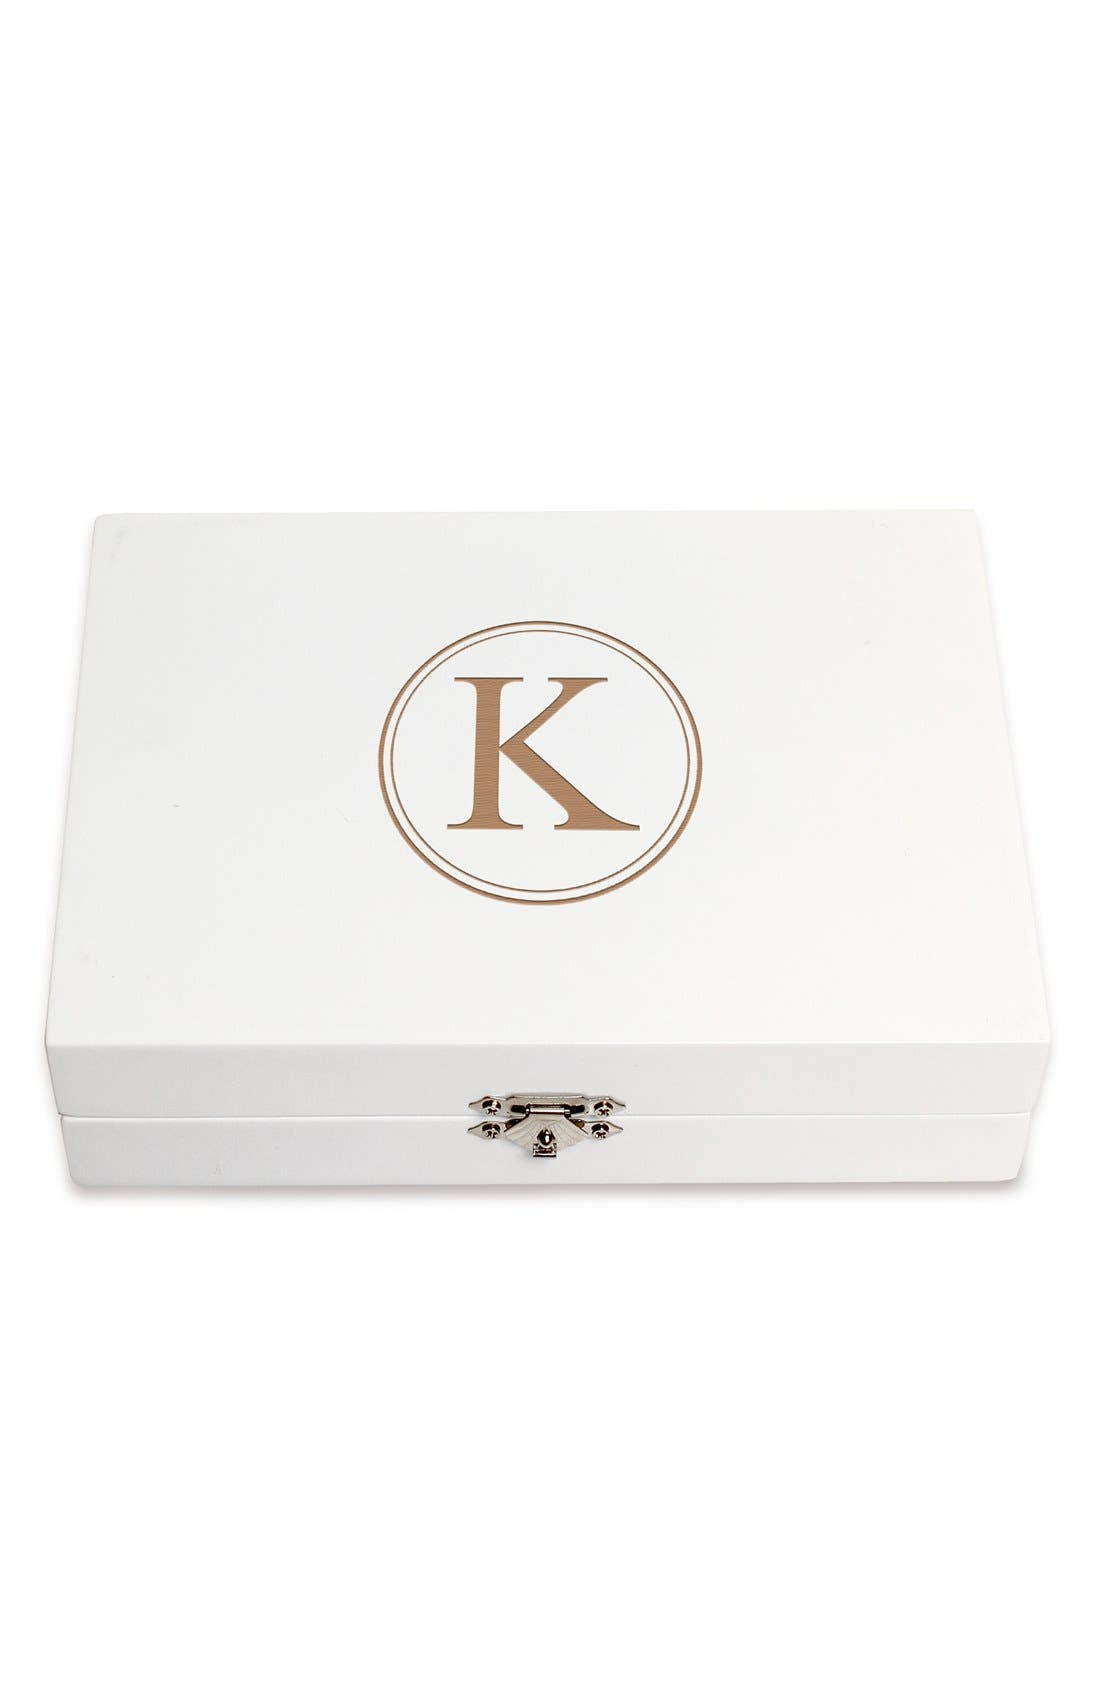 Monogram Wooden Jewelry Box,                             Main thumbnail 40, color,